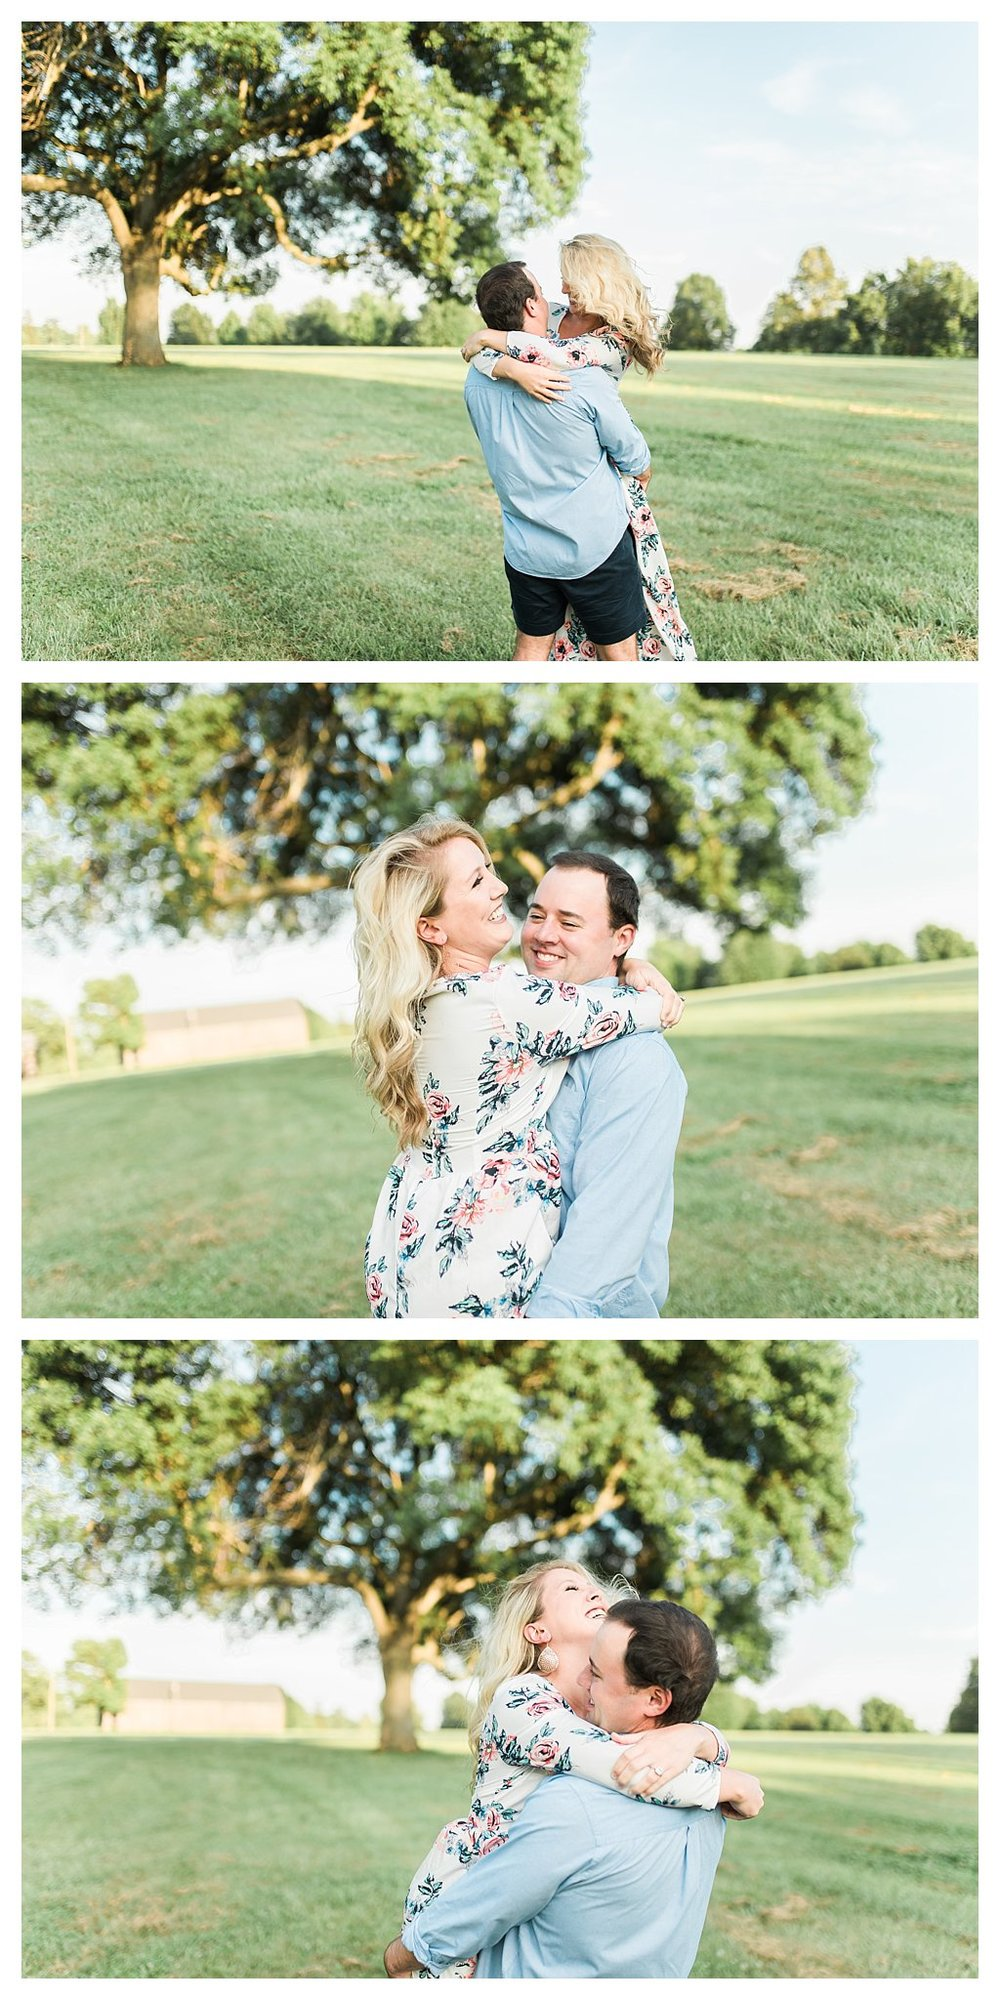 keenland-engagement-shoot-everleigh-photography-UK-engagement-shoot-lexington-engagement-shoot-kentucky-engagement-photographer-katie-and-ryan-15